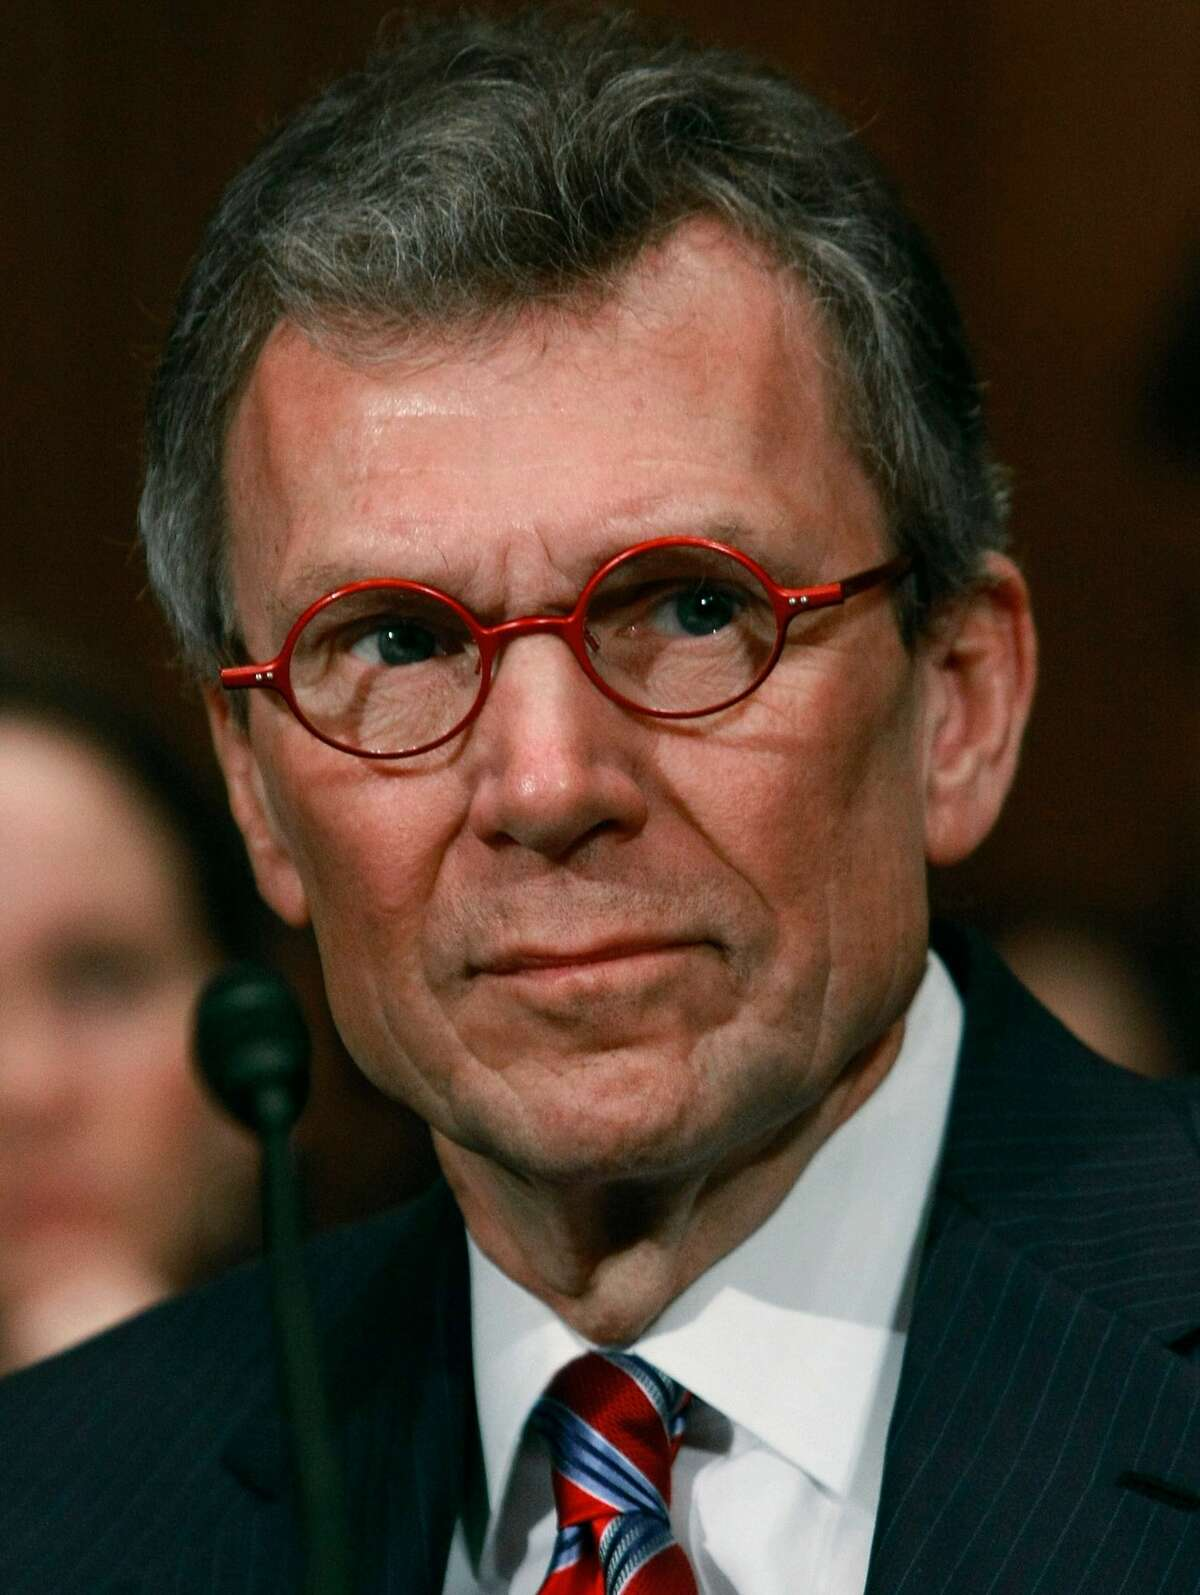 Former Senate Majority Leader Tom Daschle (D-SD) participates in his Senate Confirmation hearing before the Senate Health, Education, Labor and Pensions Committee on Capitol Hill January 8, 2009 in Washington, DC. (Photo by Mark Wilson/Getty Images)